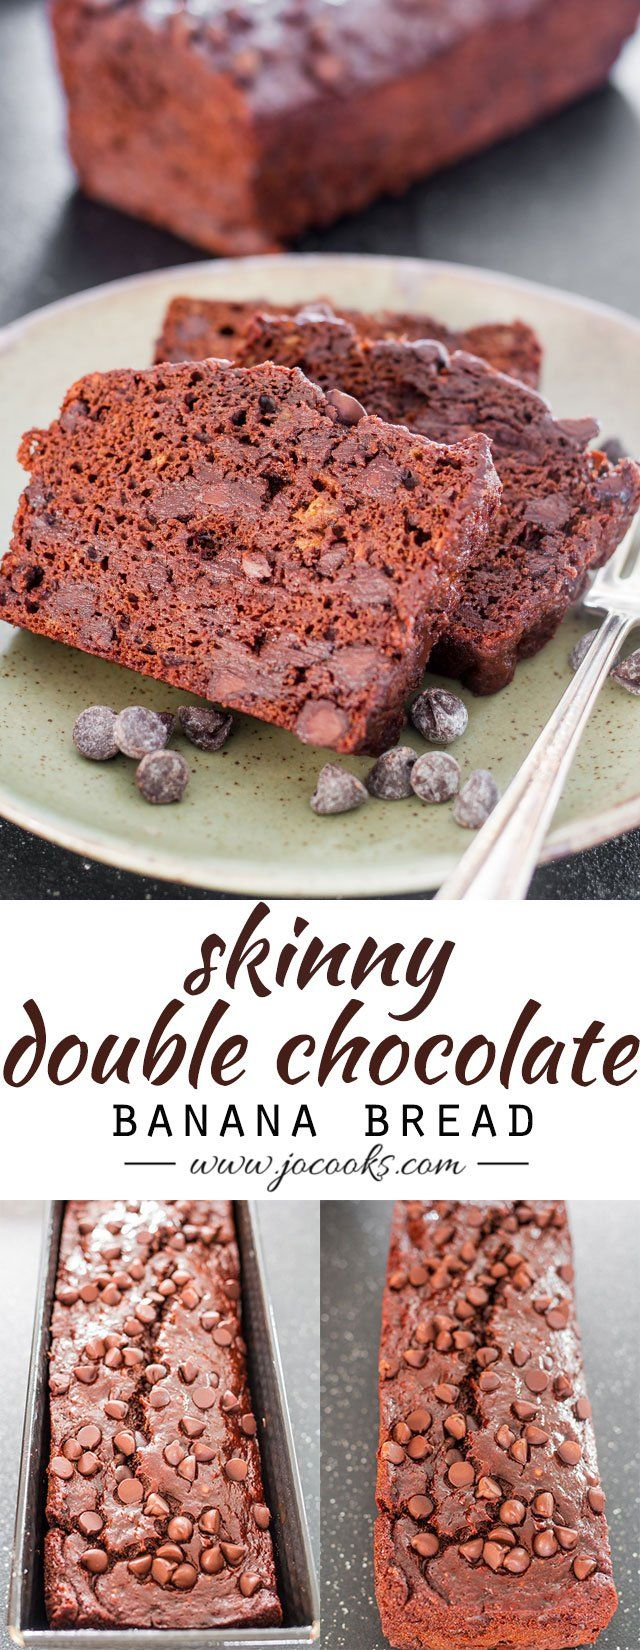 1000+ ideas about Skinny Banana Bread on Pinterest | Low ...